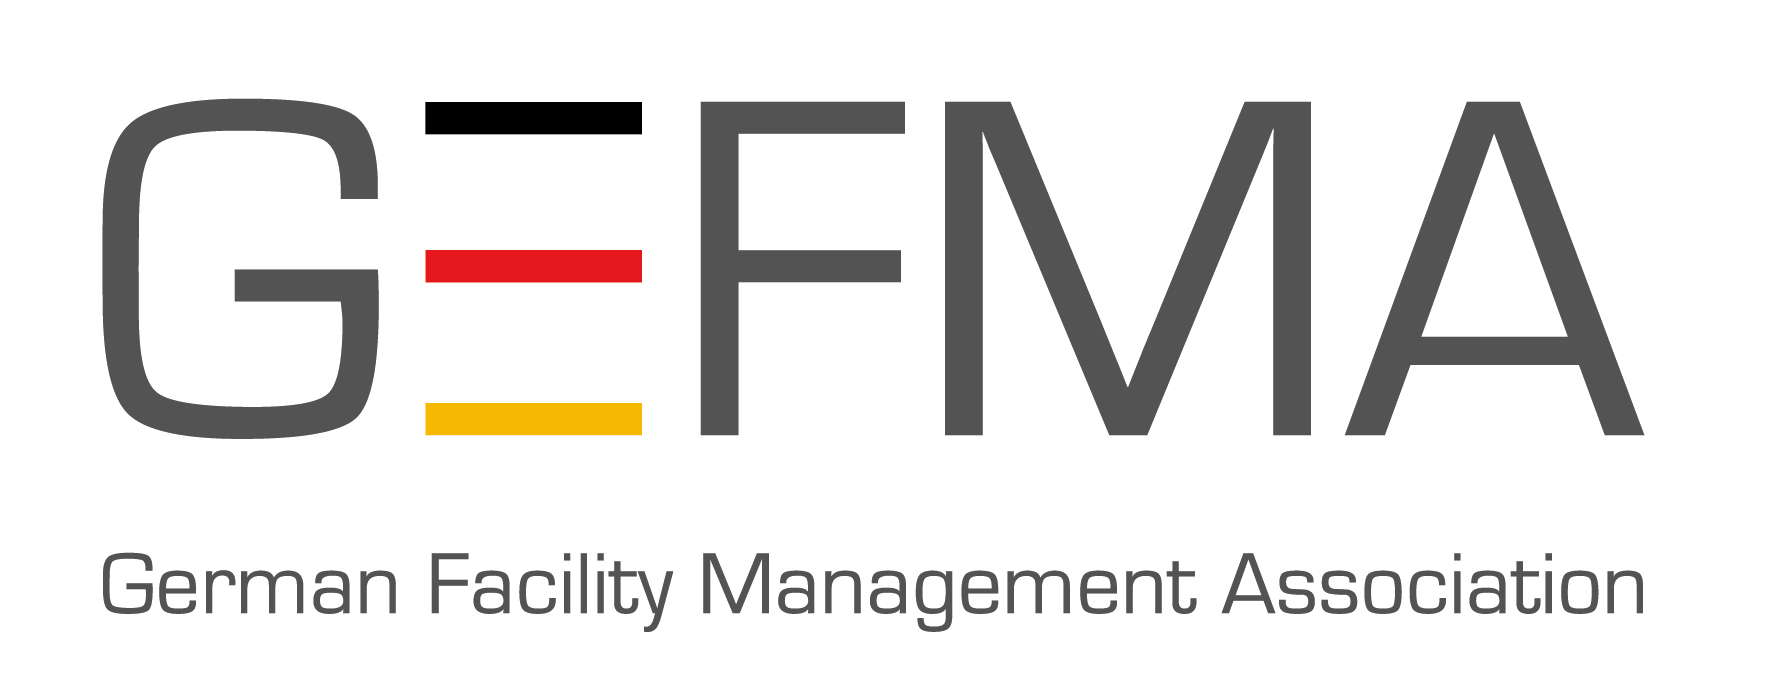 Die Pacon Real Estate GmbH ist Mitglied der GEFMA (German Facility Management Association)